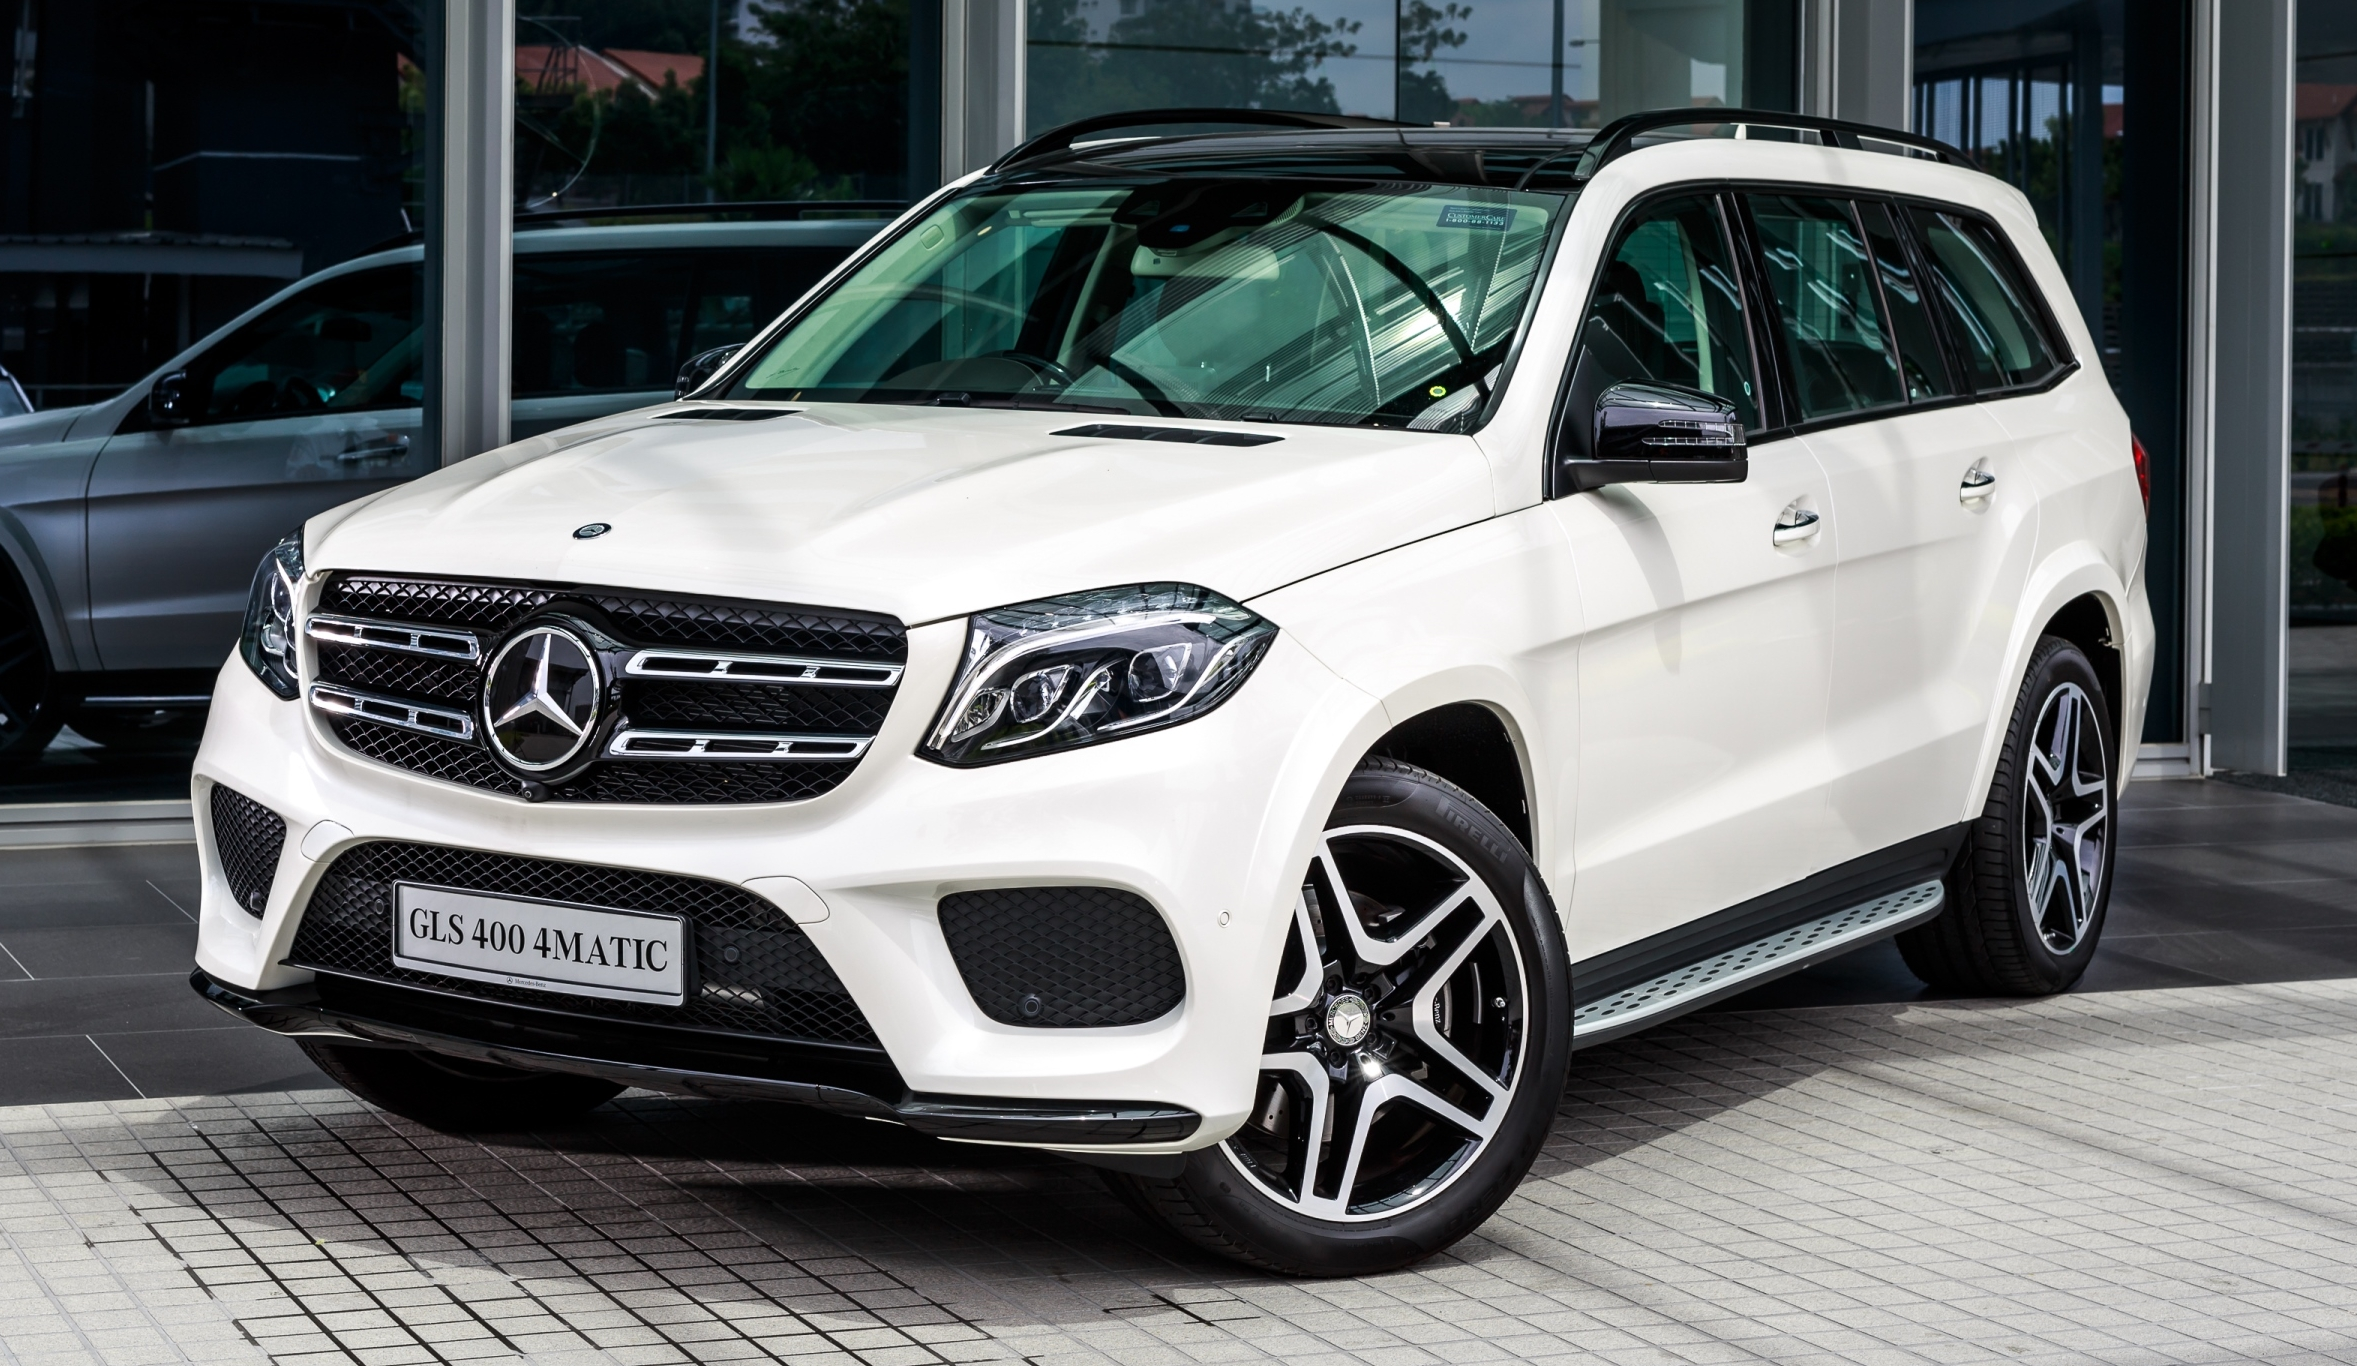 Mercedes benz gls 400 4matic launched rm889k for Mercedes benz two seater